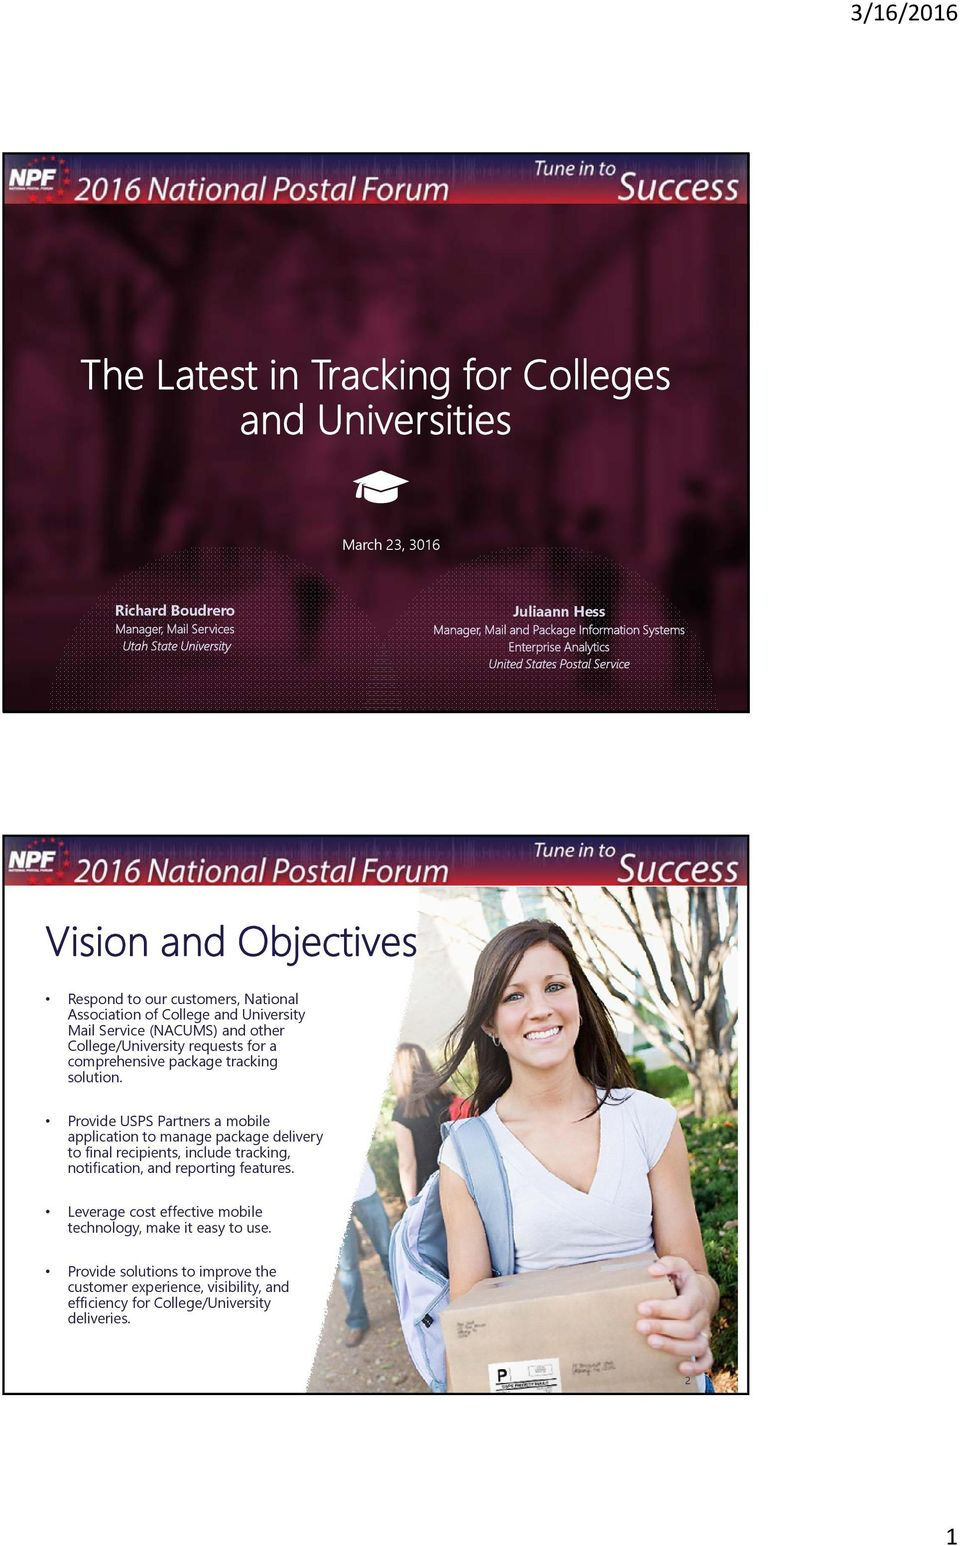 The Latest in Tracking for Colleges and Universities - PDF